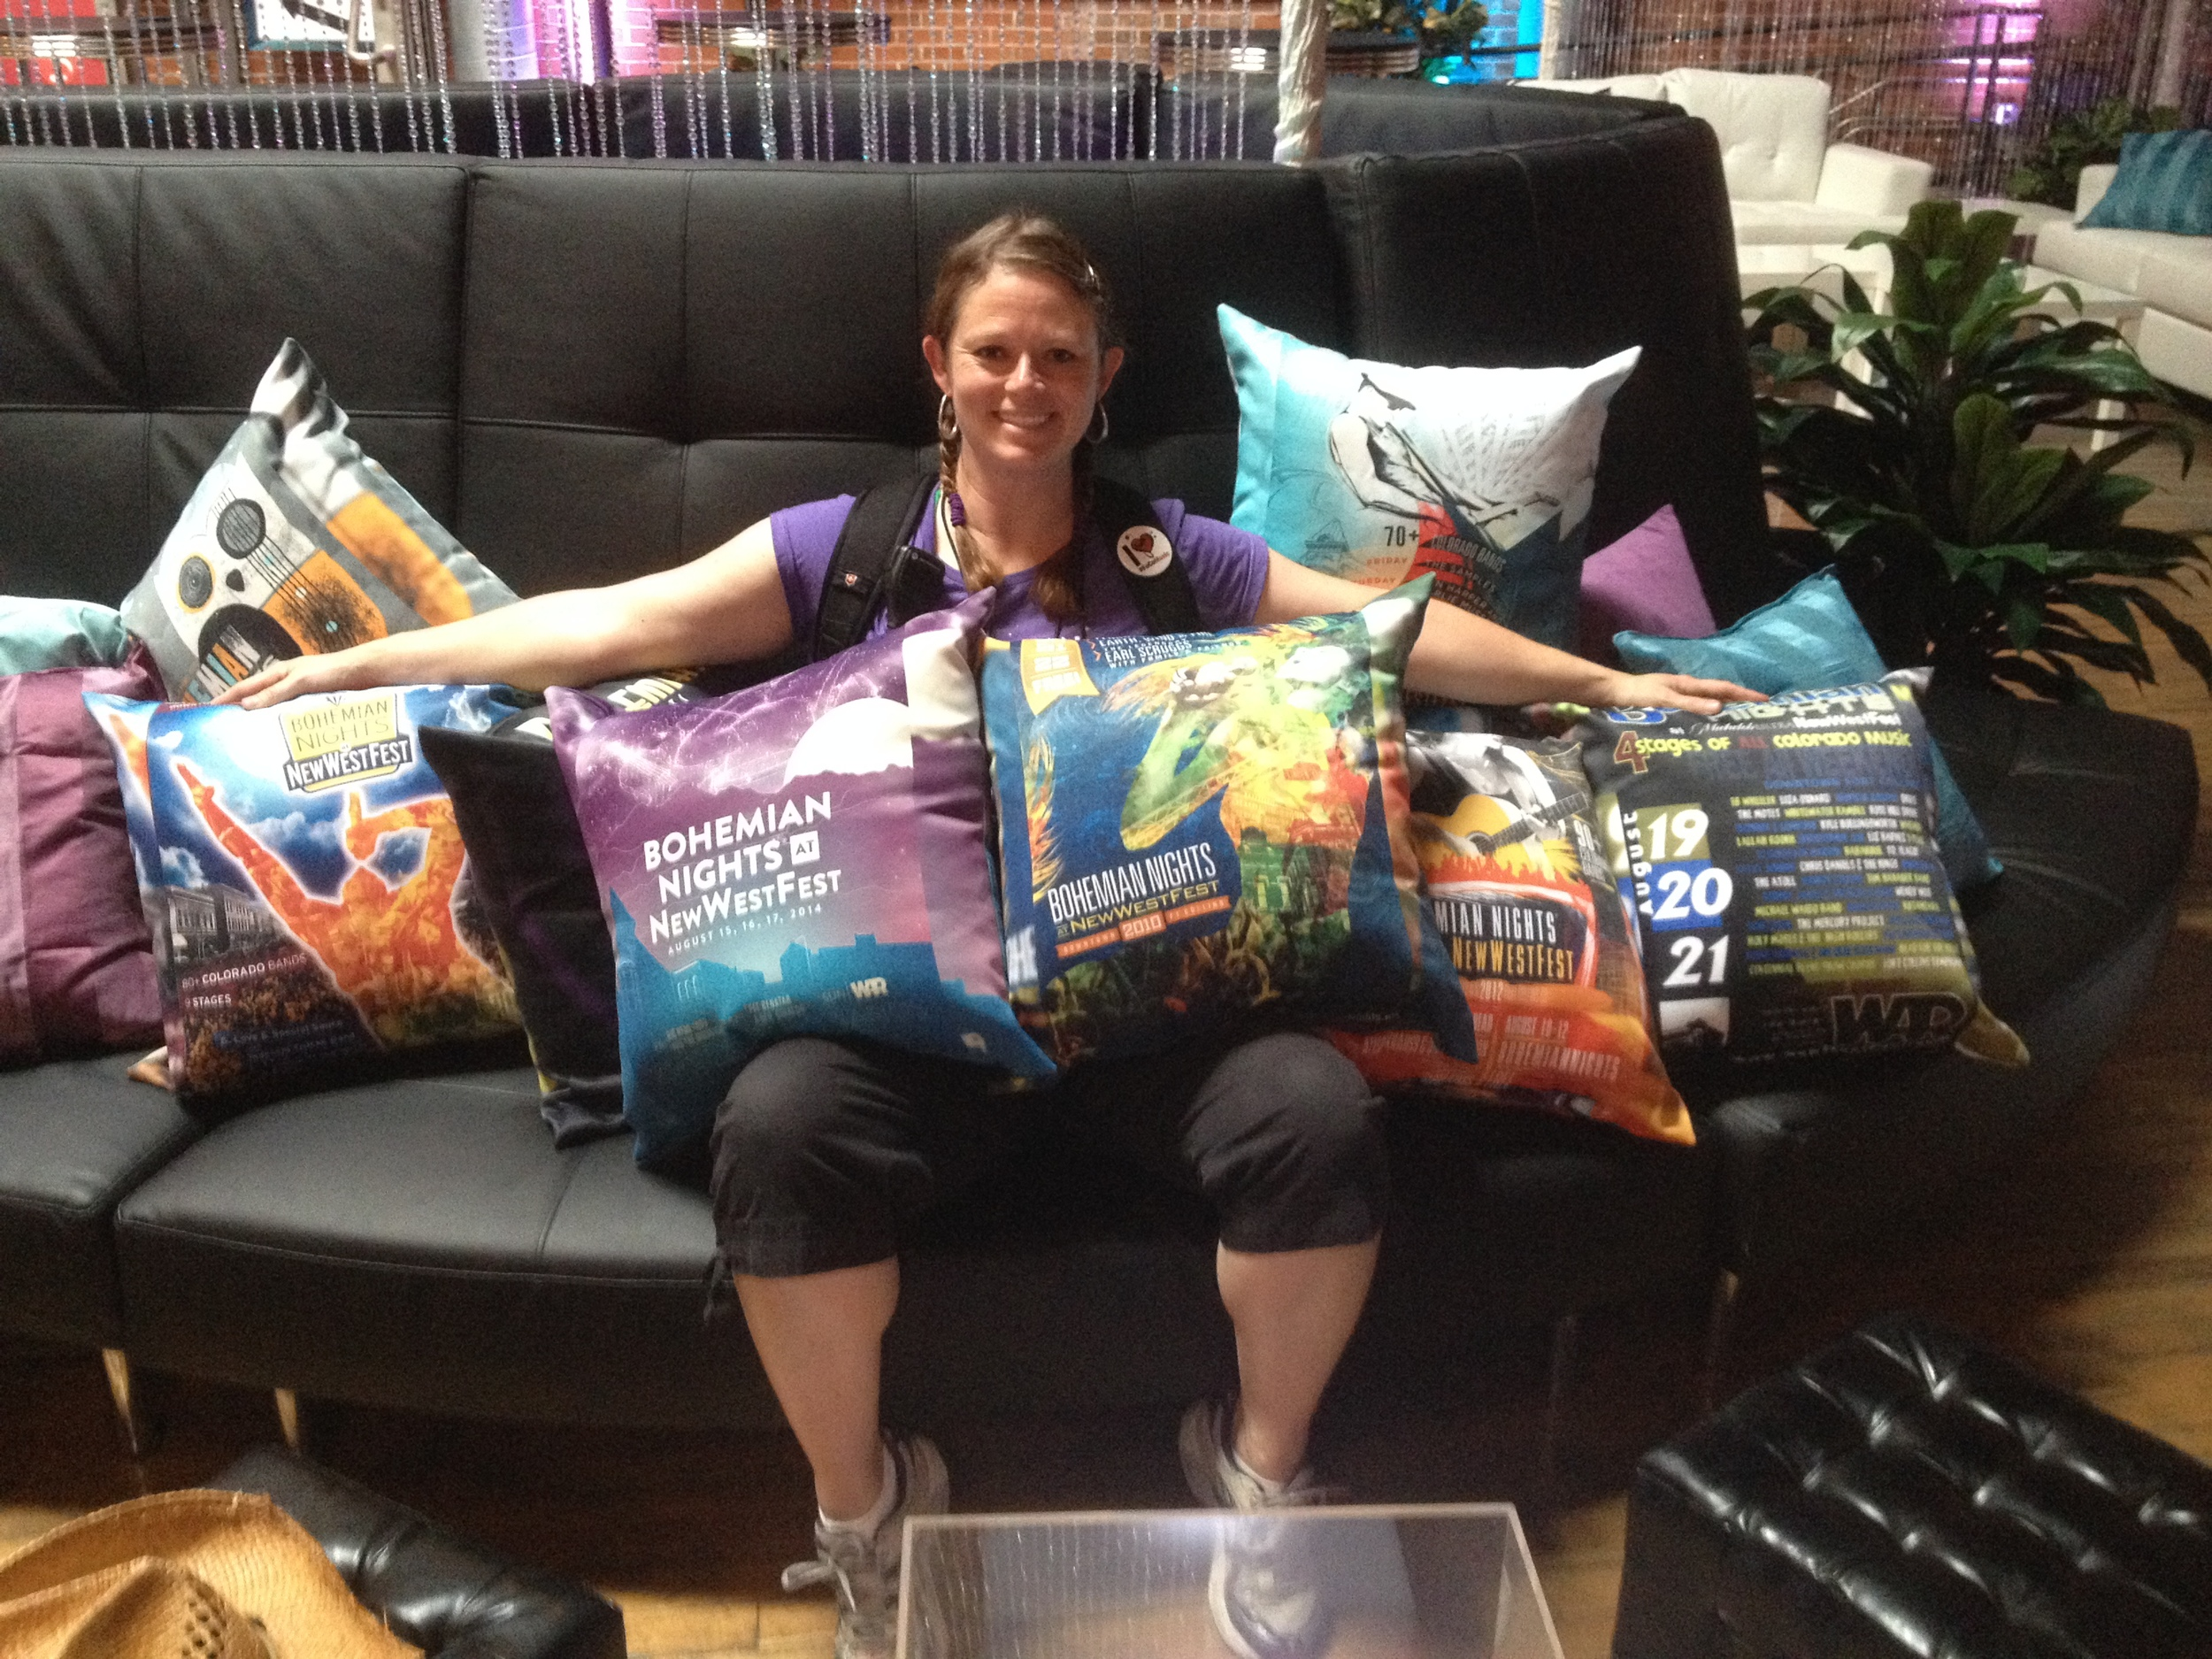 Peggy, festival director, with the collection of over 10 years of Bohemian Nightsat NewWestFest branding (pillows!)